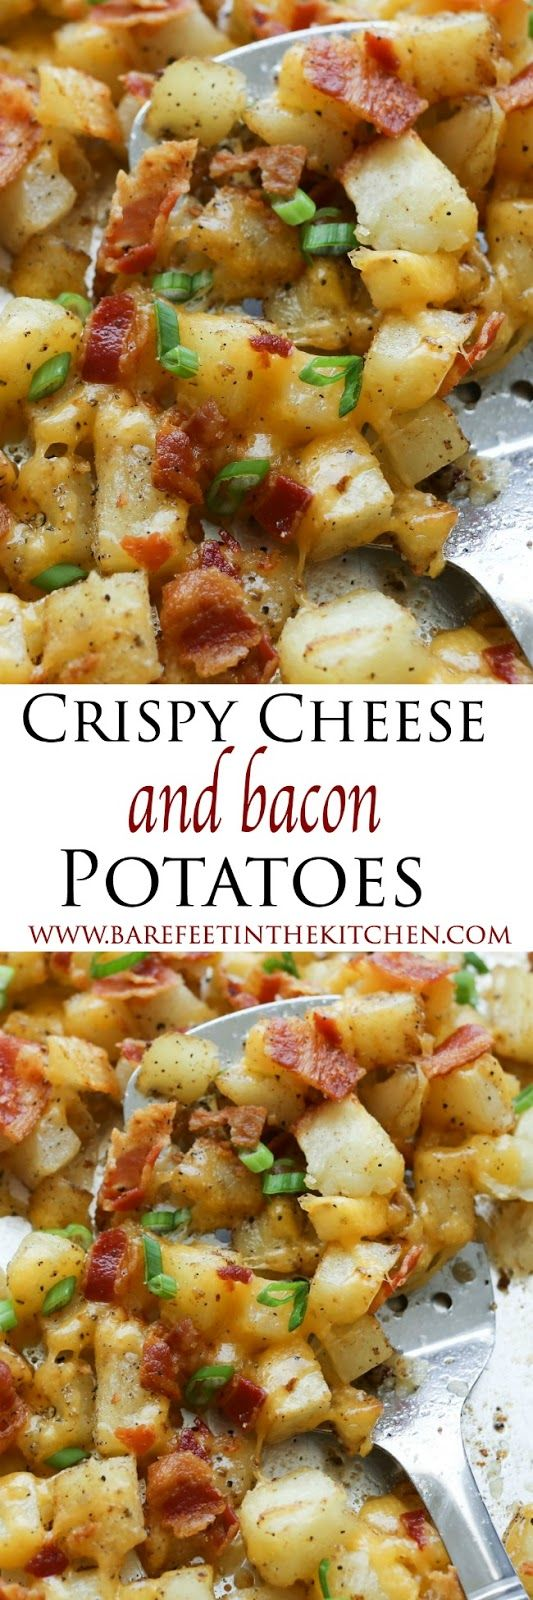 Crispy Cheese and Bacon Potatoes - Crispy roasted potatoes, topped with melting cheese and plenty of crisp bacon. The perfect side for breakfast or dinner!